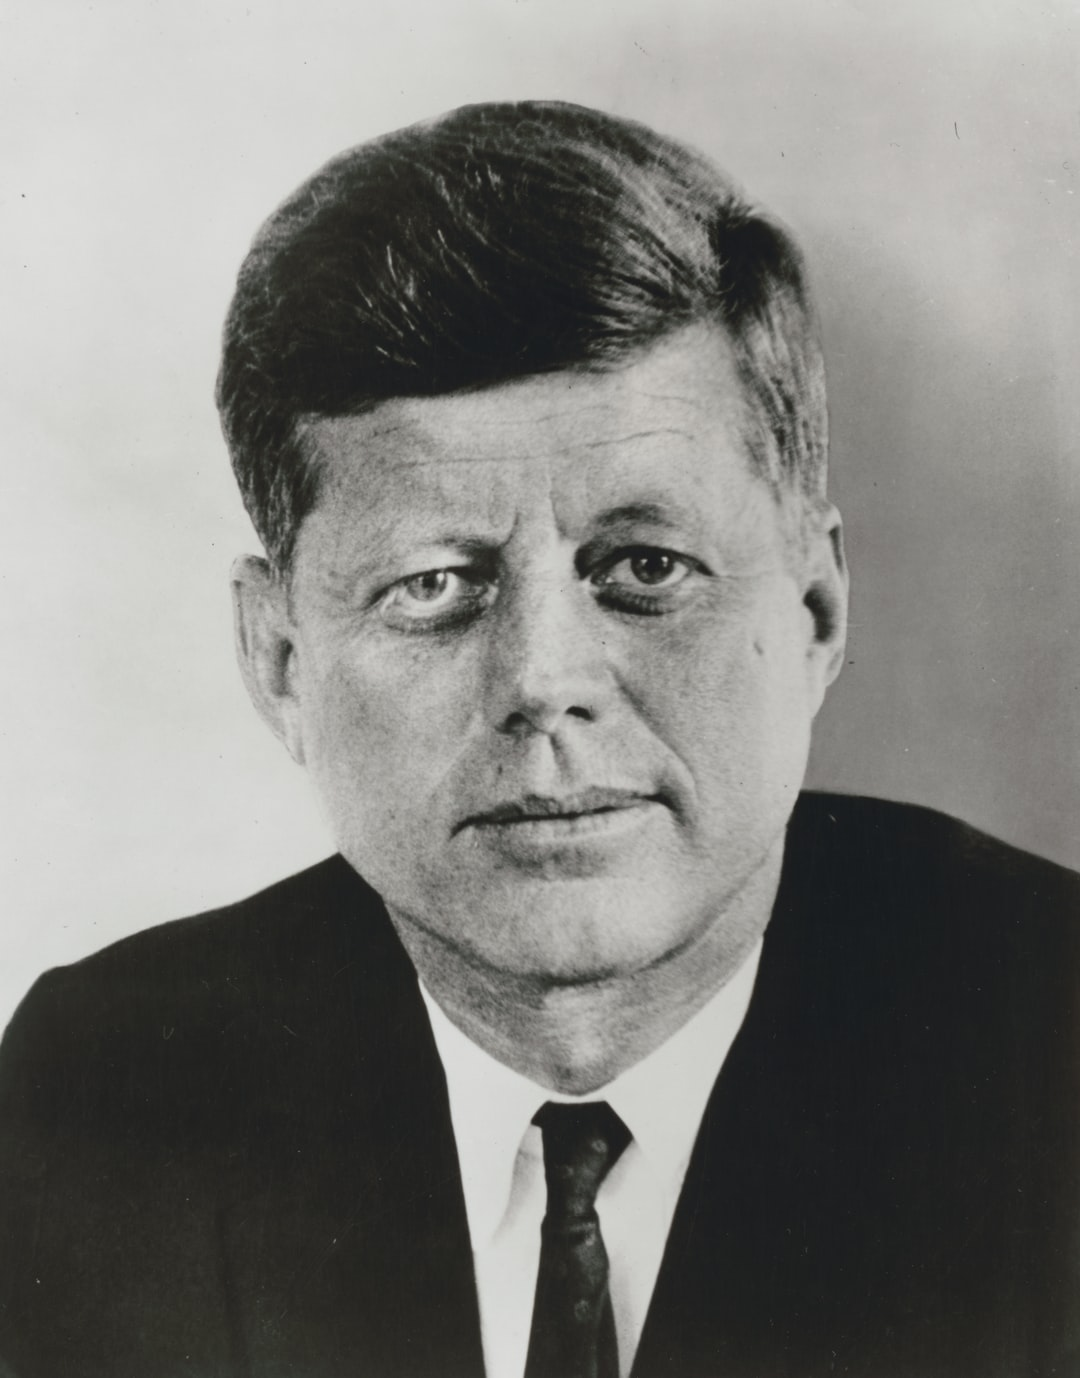 [President John F. Kennedy, head-and-shoulders portrait, facing front].  Photograph from the Presidential File Collection, 1961. Library of Congress Prints & Photographs Division.  https://www.loc.gov/item/96523447/